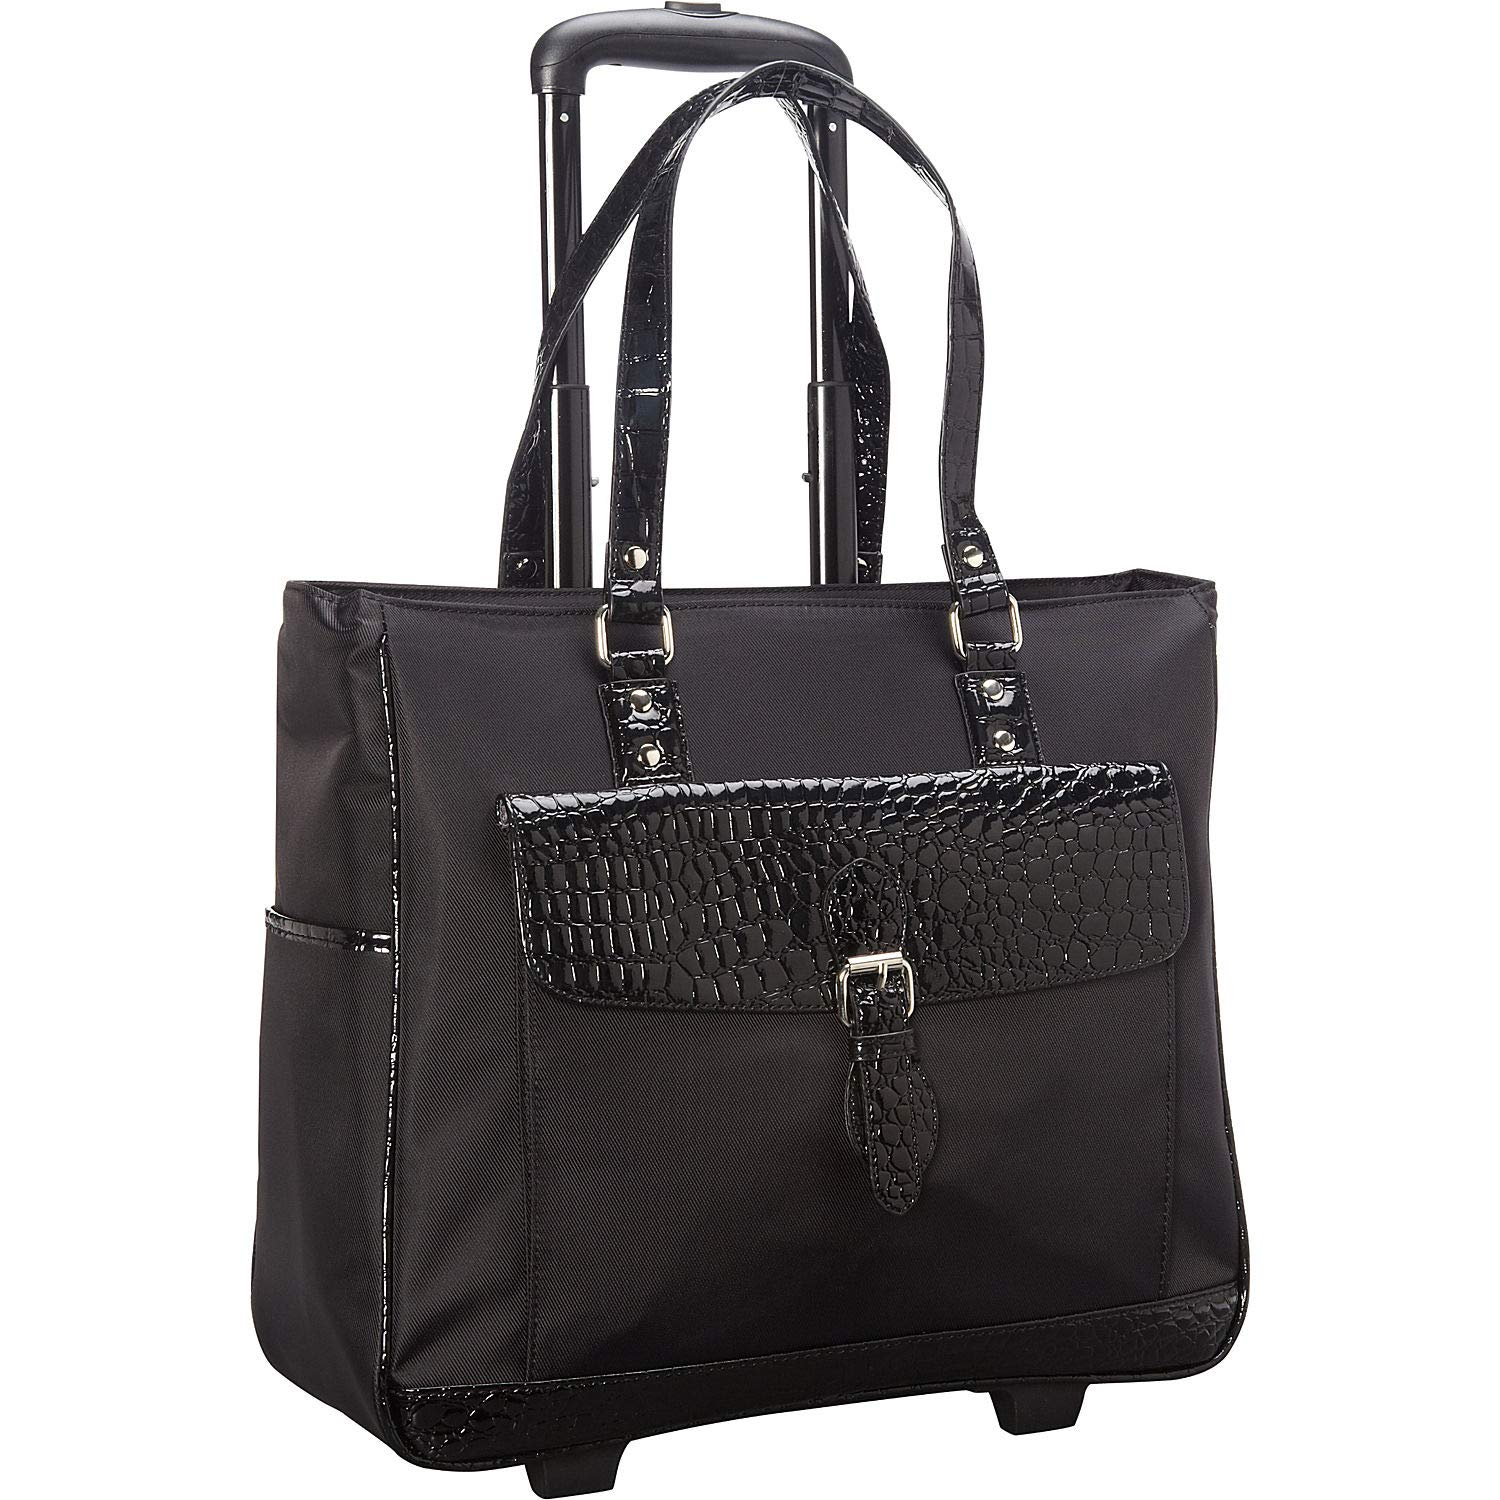 Heritage Travelware Women's Lake View Nylon Twill 2-Wheeled 17'' Laptop & Tablet Business Tote Carry-On, Black by Heritage Travelware